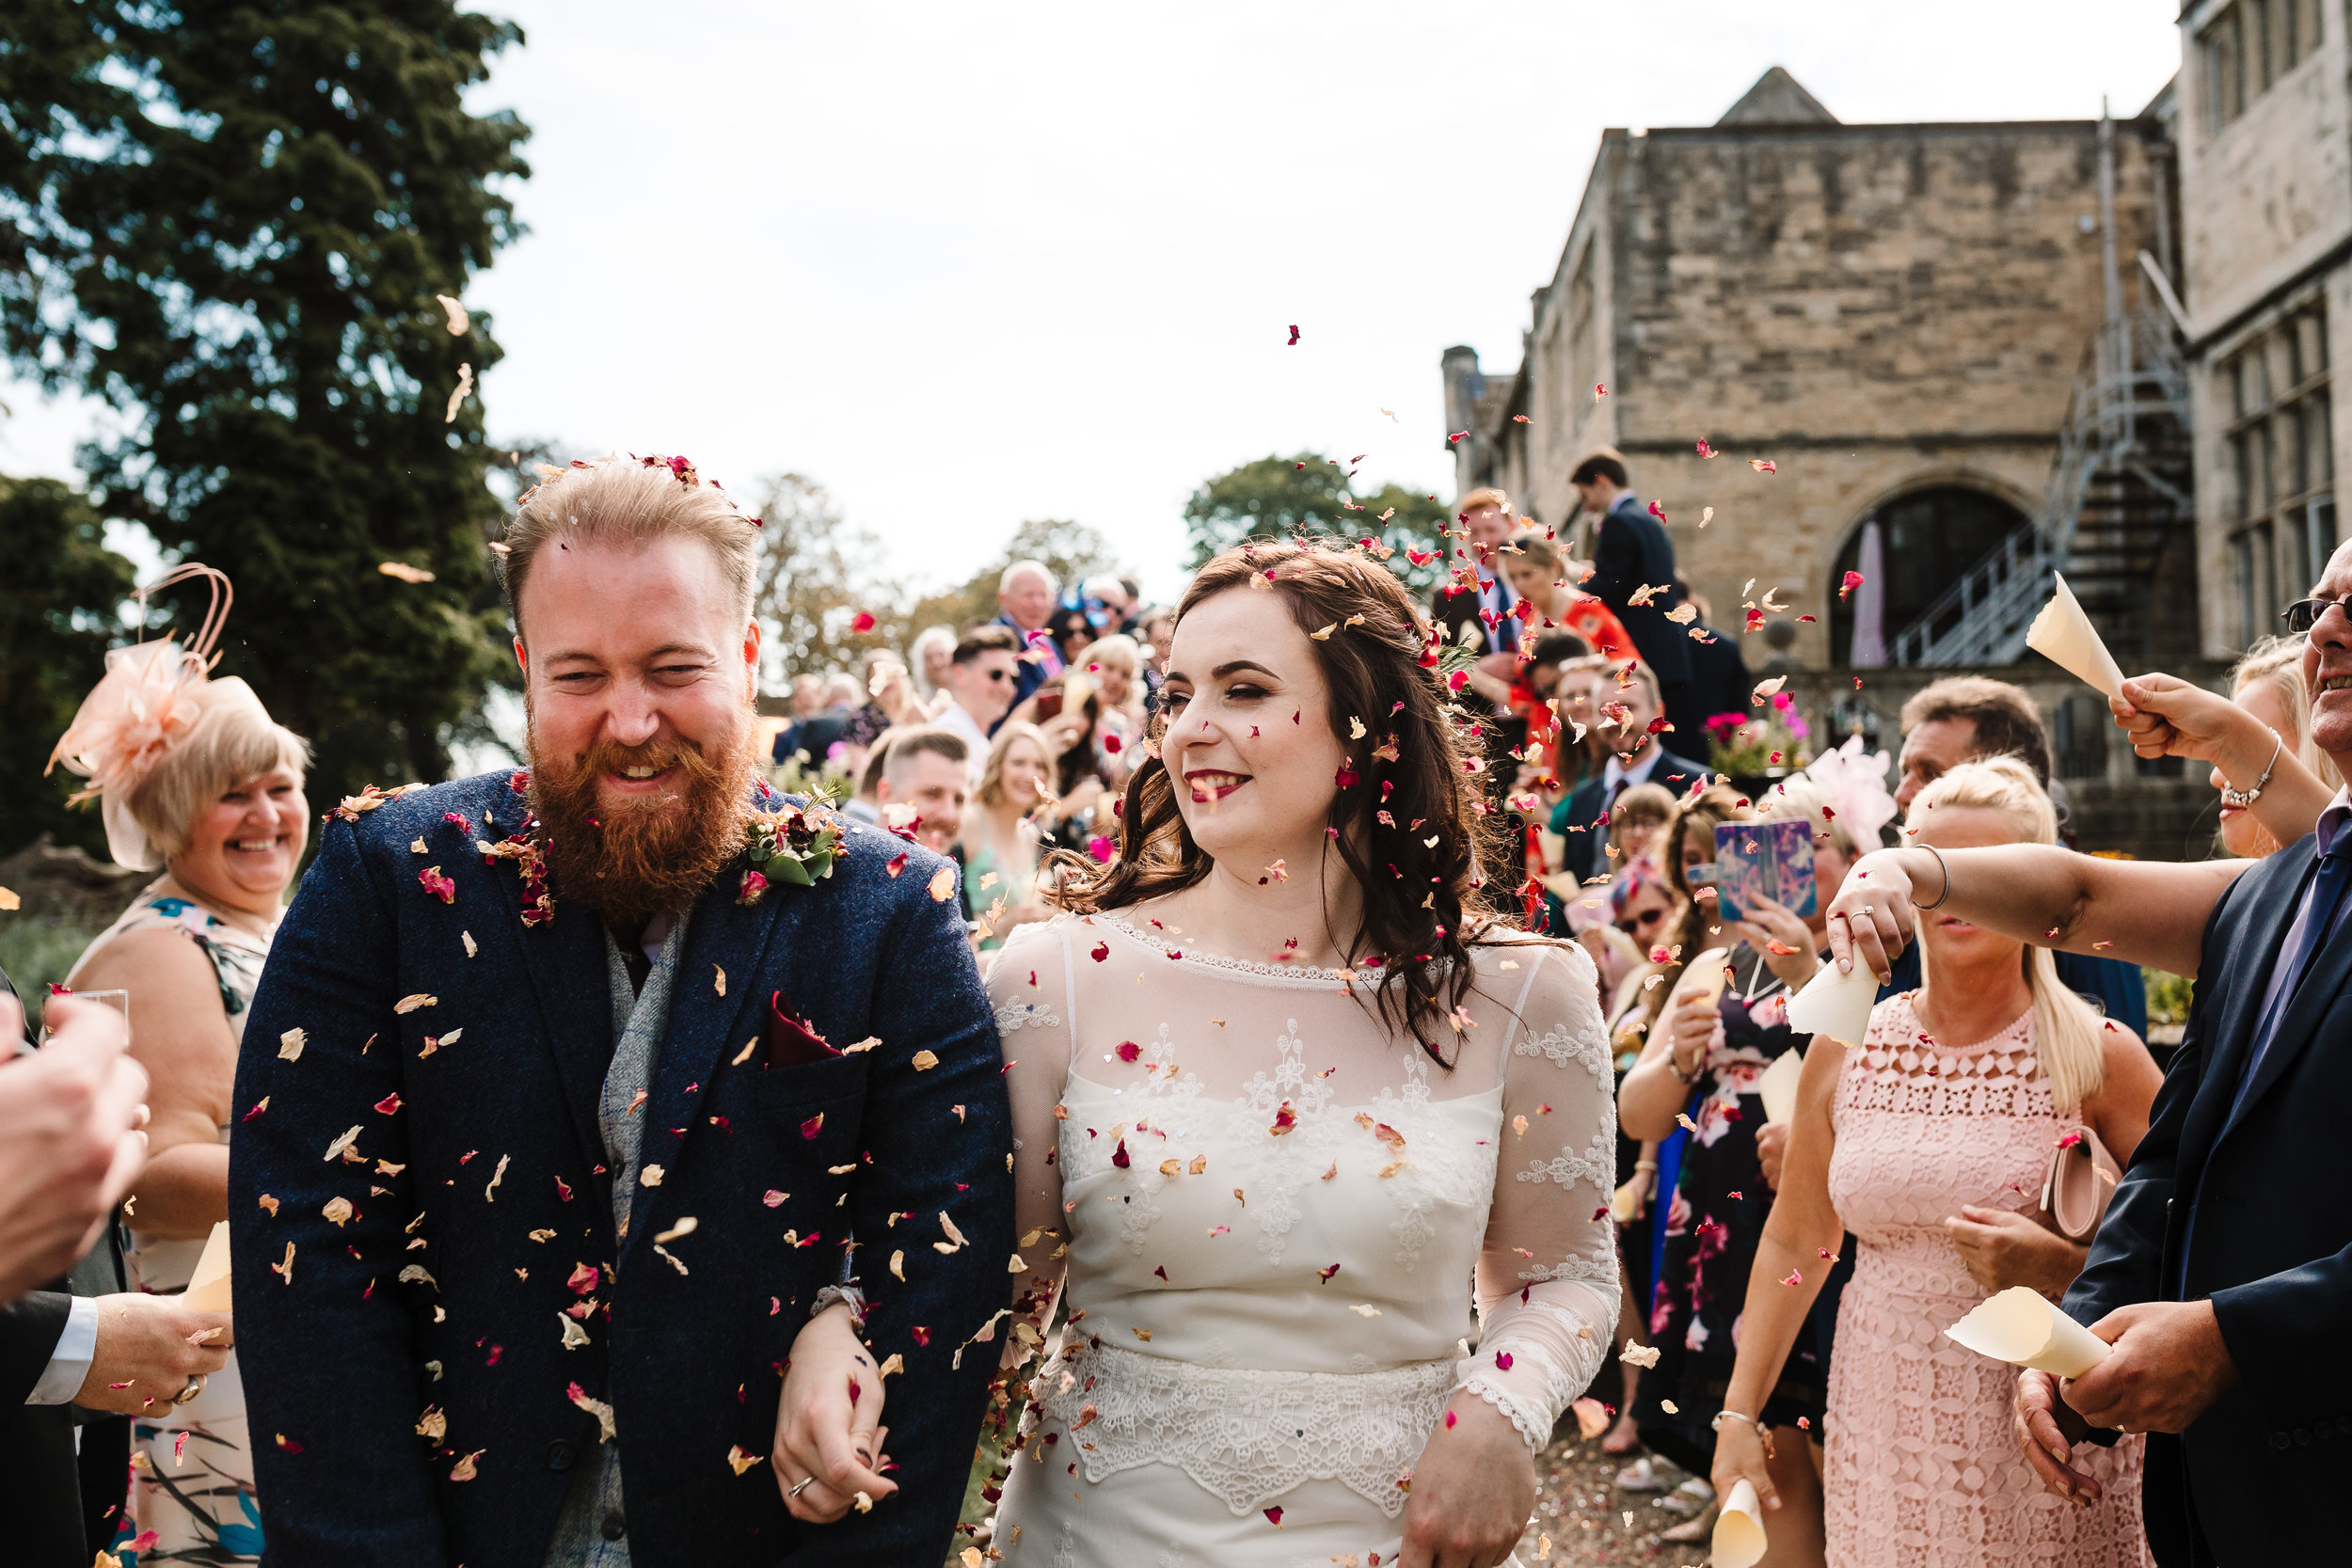 Guests throwing confetti over a laughing bride and groom